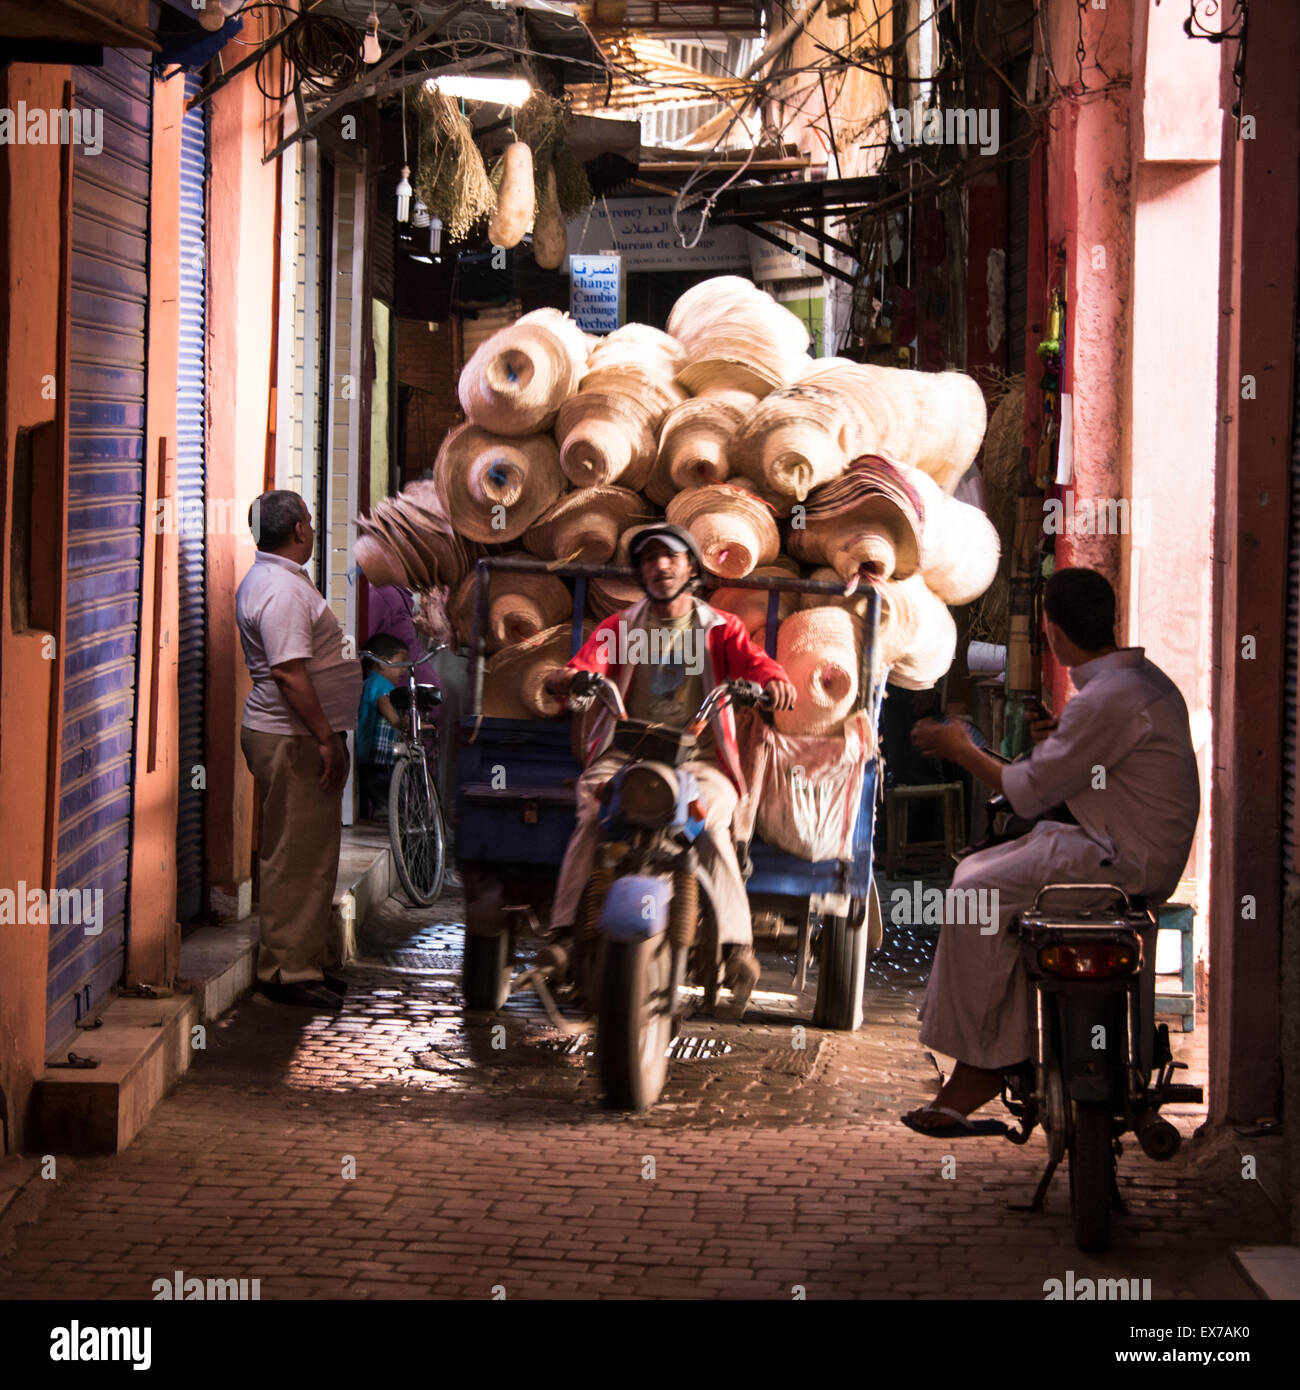 A material vendor on a motorized vehicle in Marrakech, Morocco - Stock Image